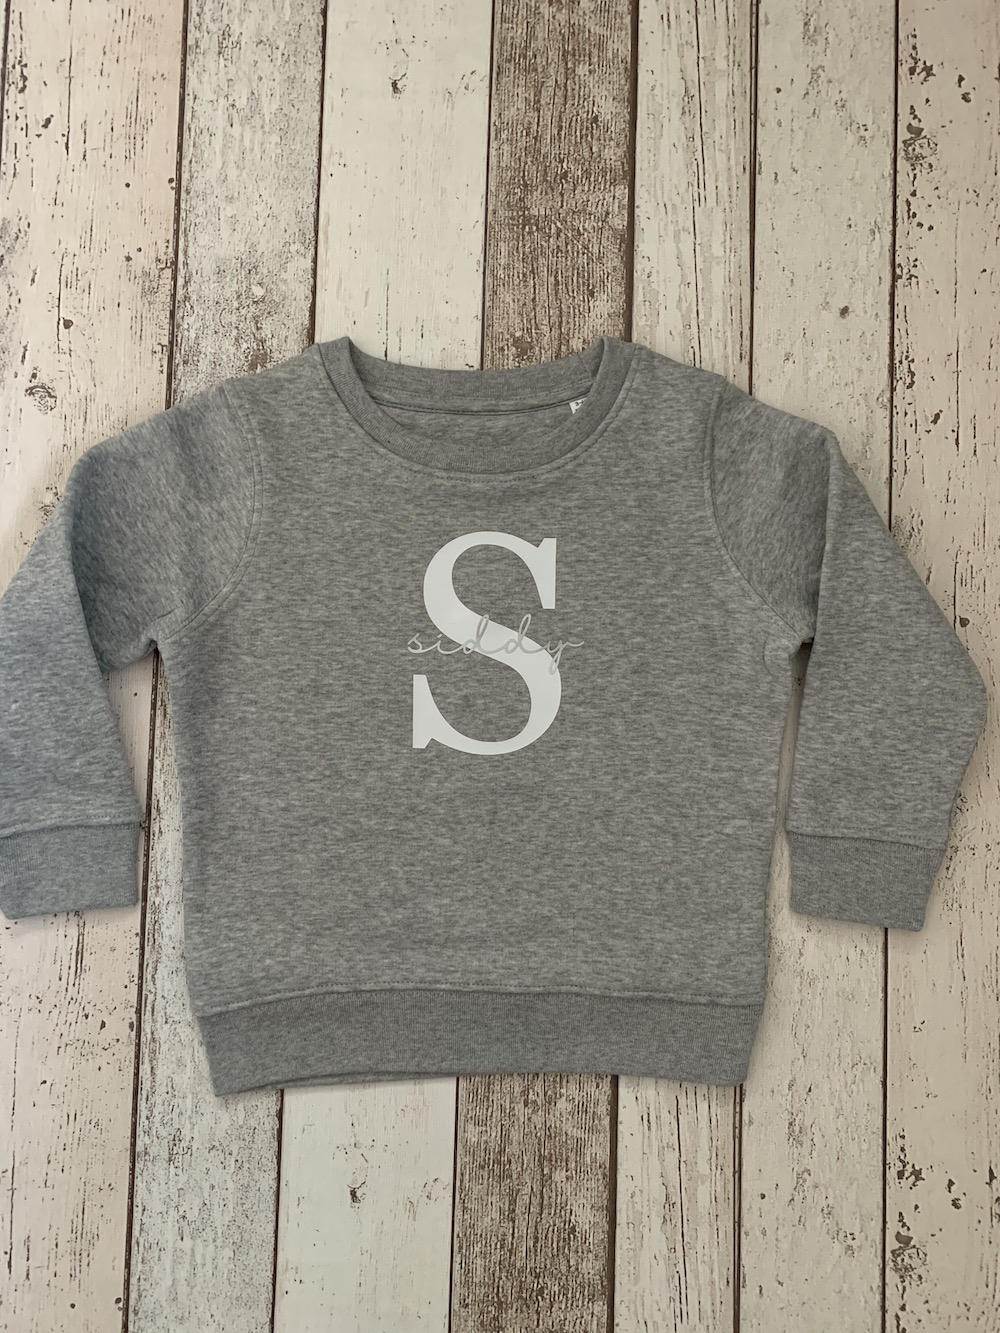 Initial Grey Sweatshirt – Children's Size